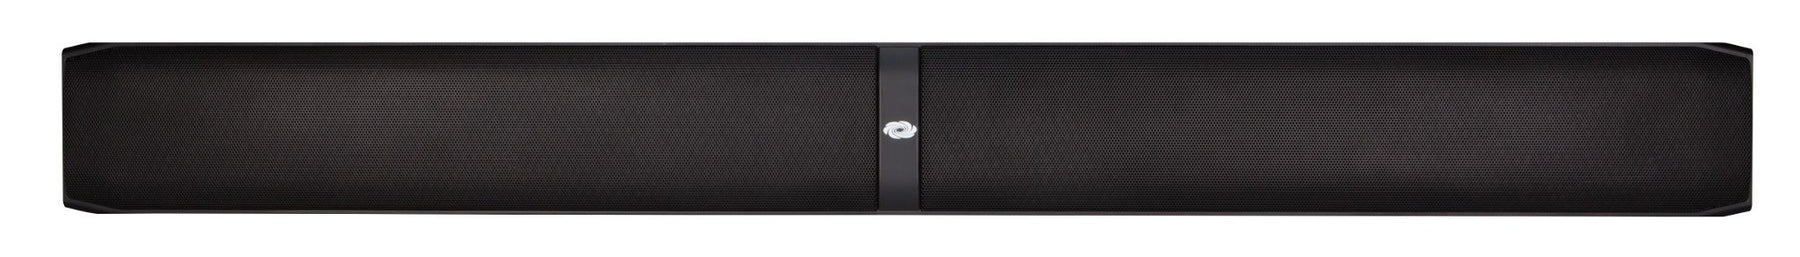 Saros® Sound Bar 200 | Crestron Powered Black Speaker | SB-200-P-B